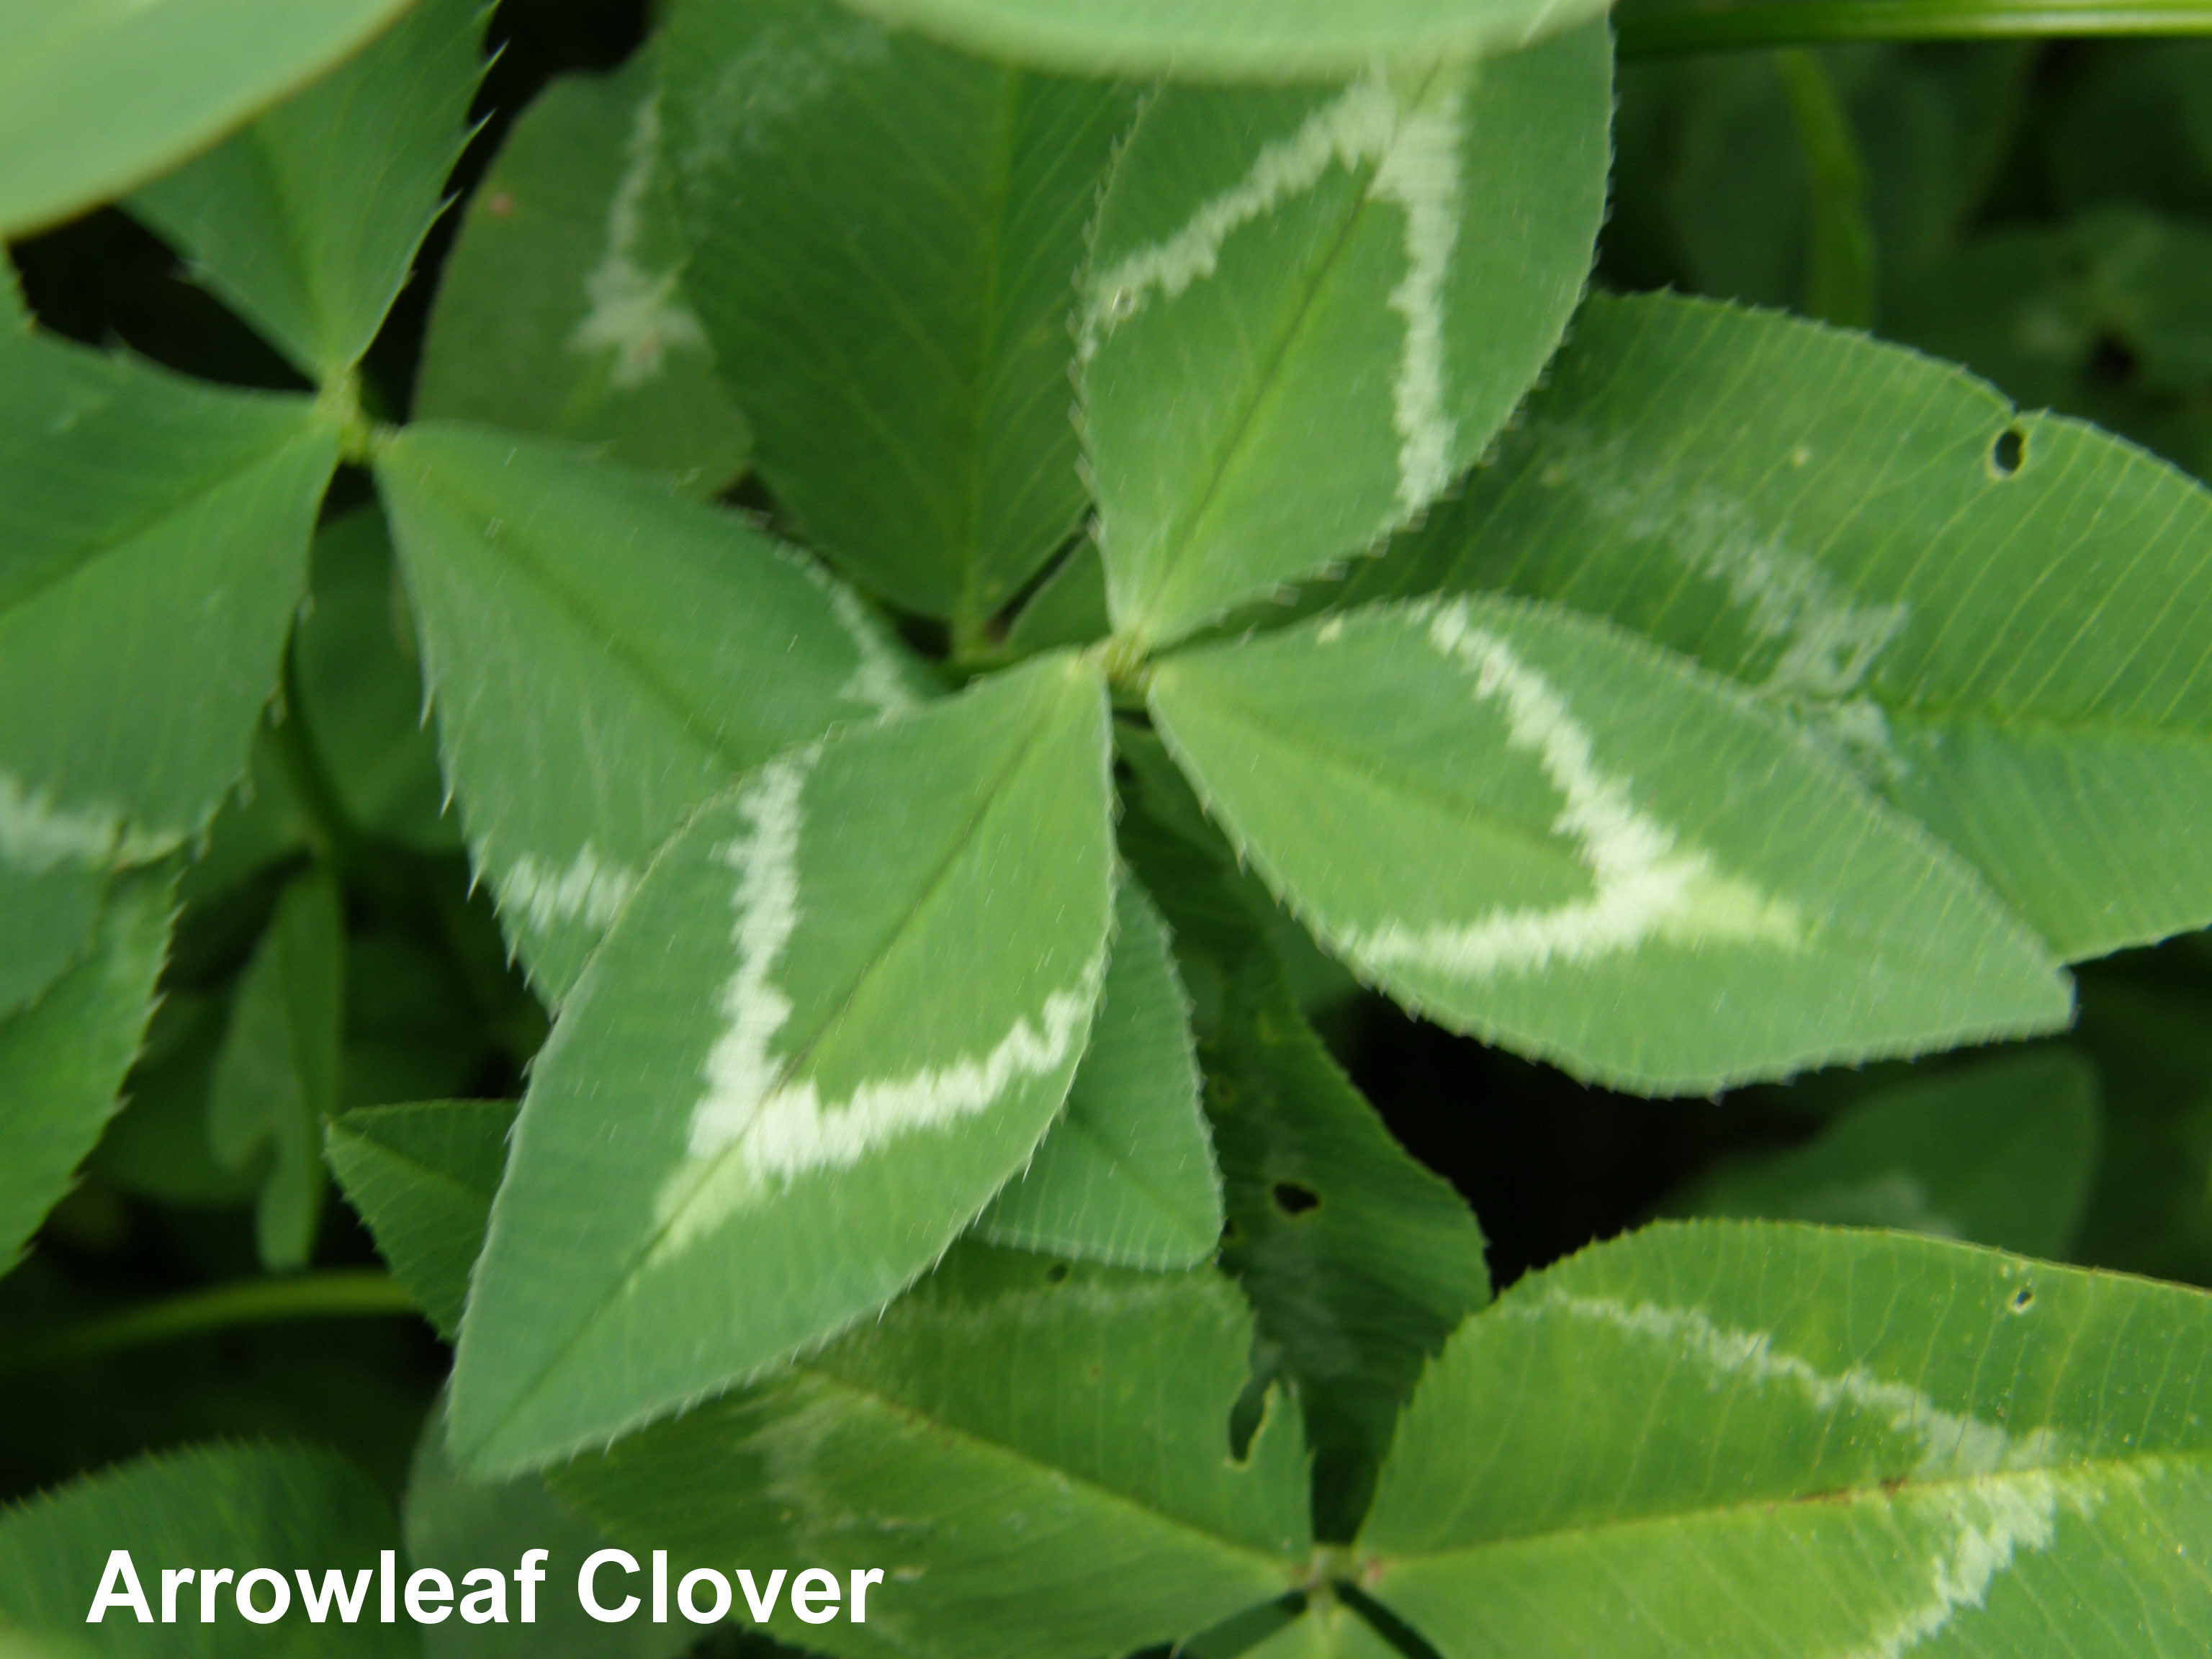 green clover with white markings in the shape of an arrow.